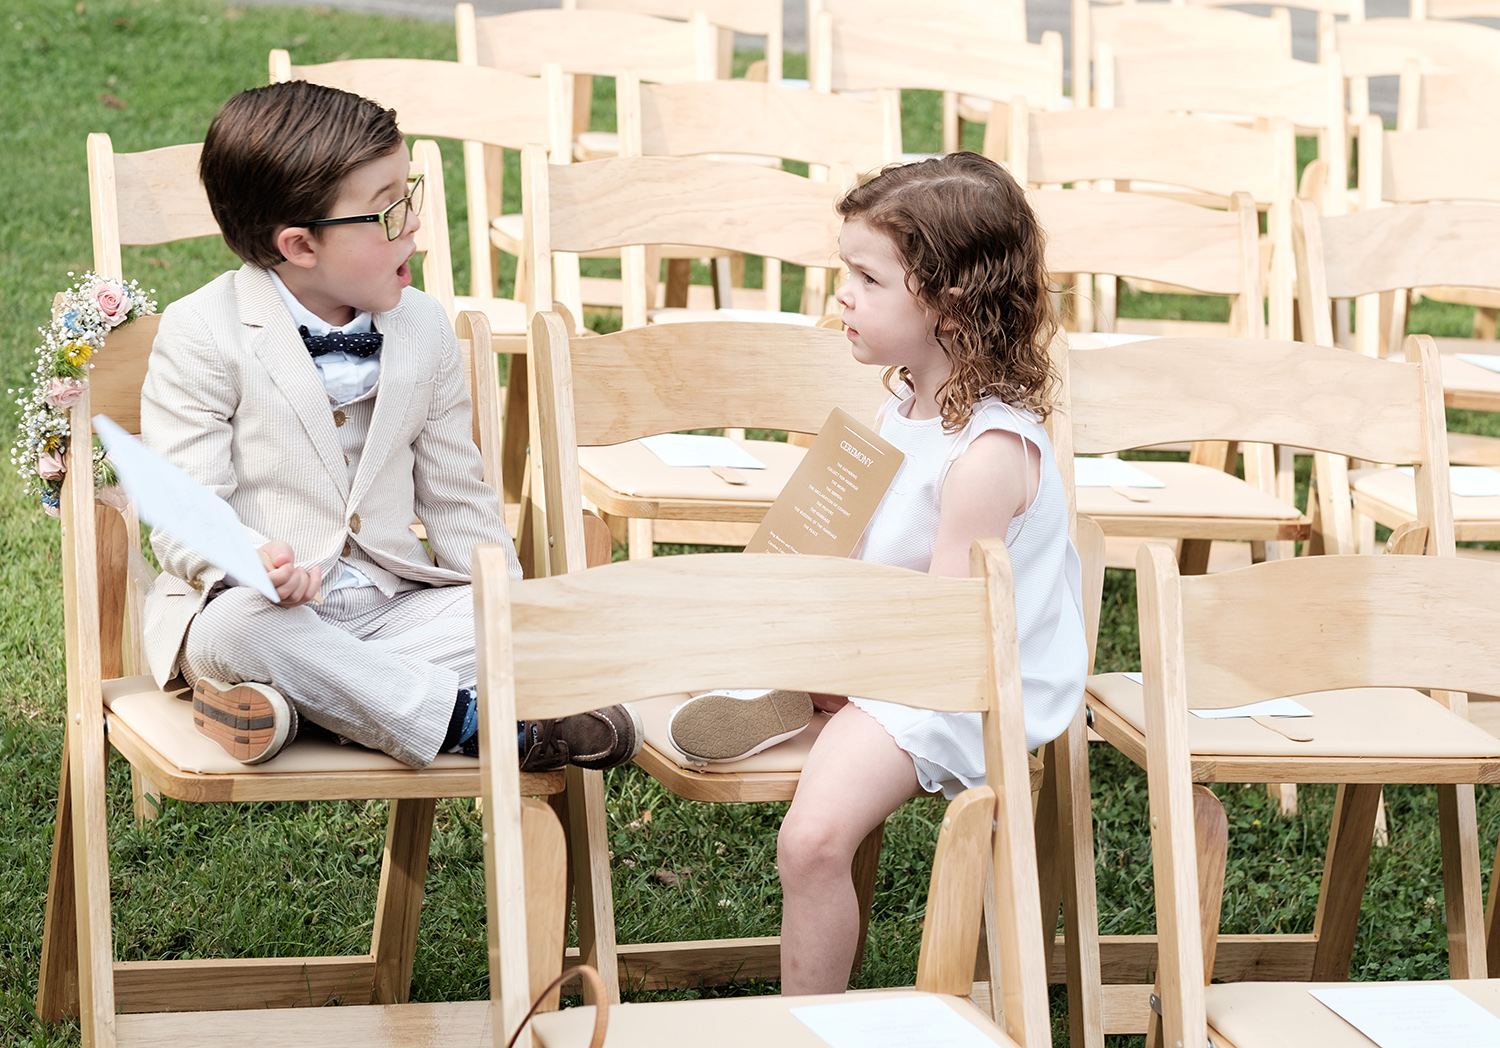 mirrorless cameras and weddings - two kids at a wedding